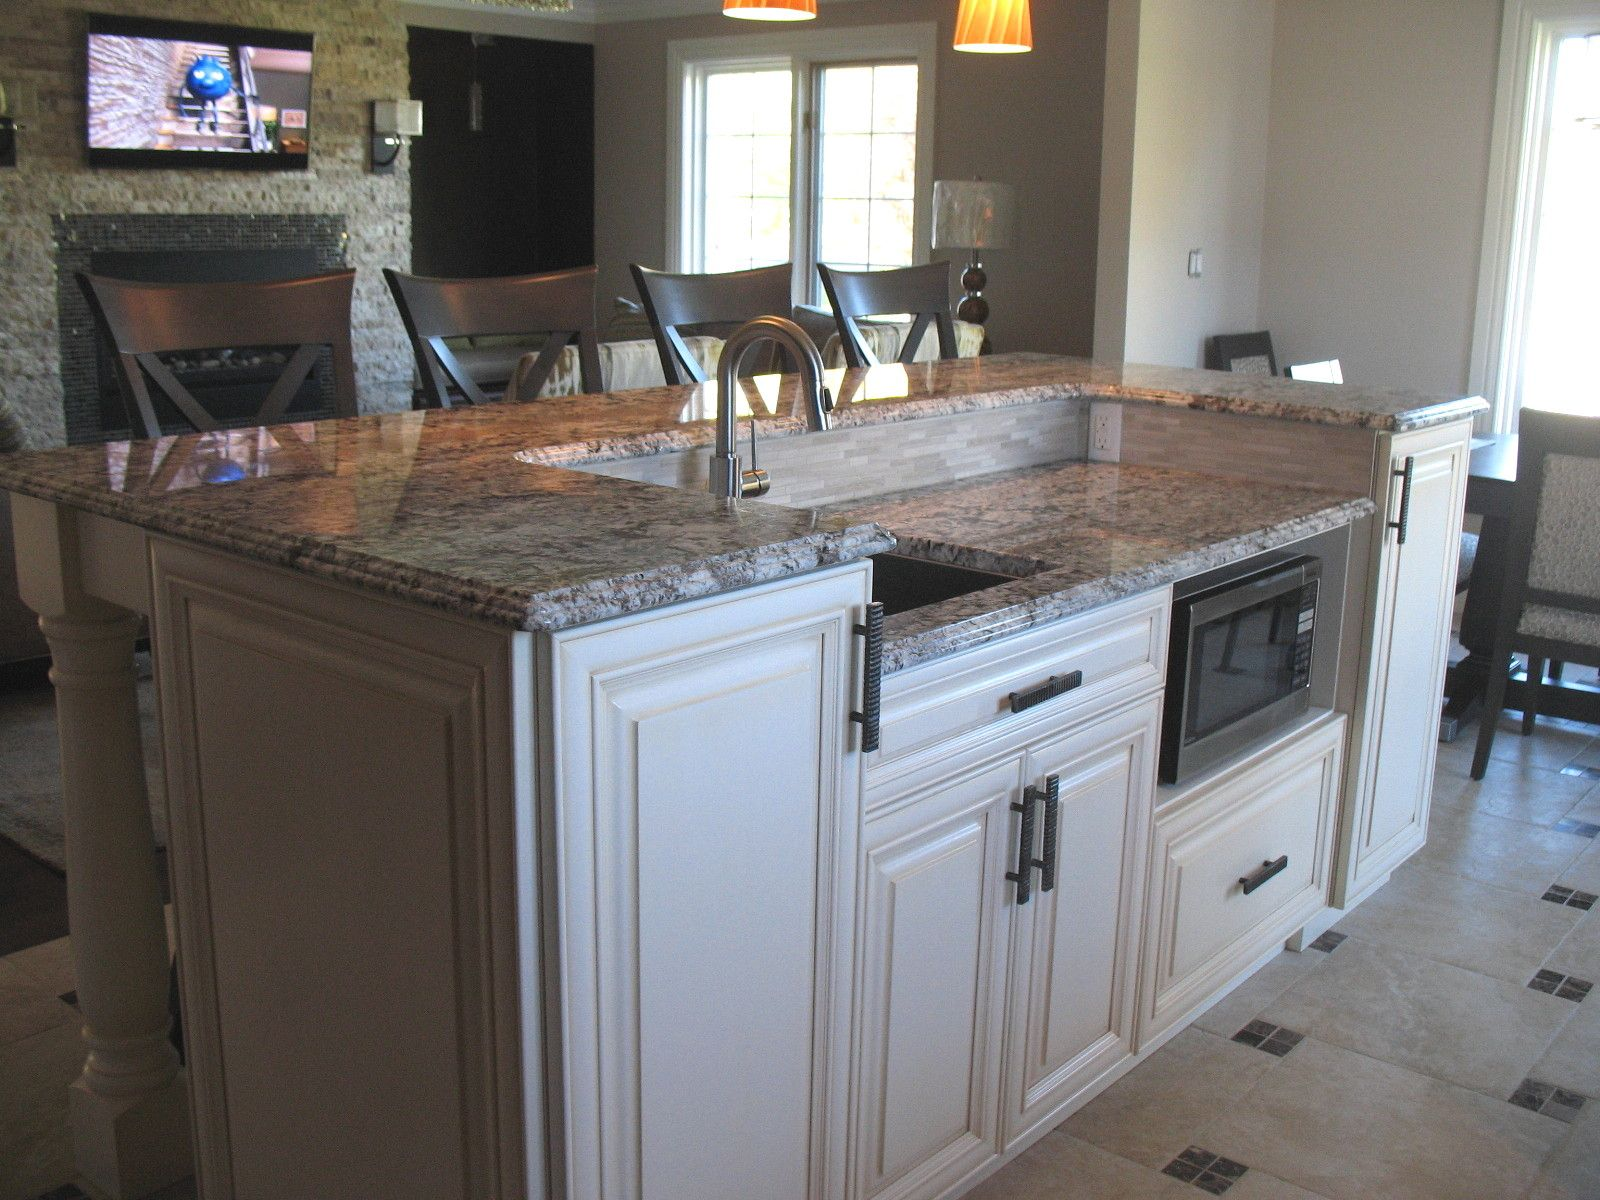 Chiefswood Classic Kitchen With Modern Touches Two: kitchen island with sink and seating